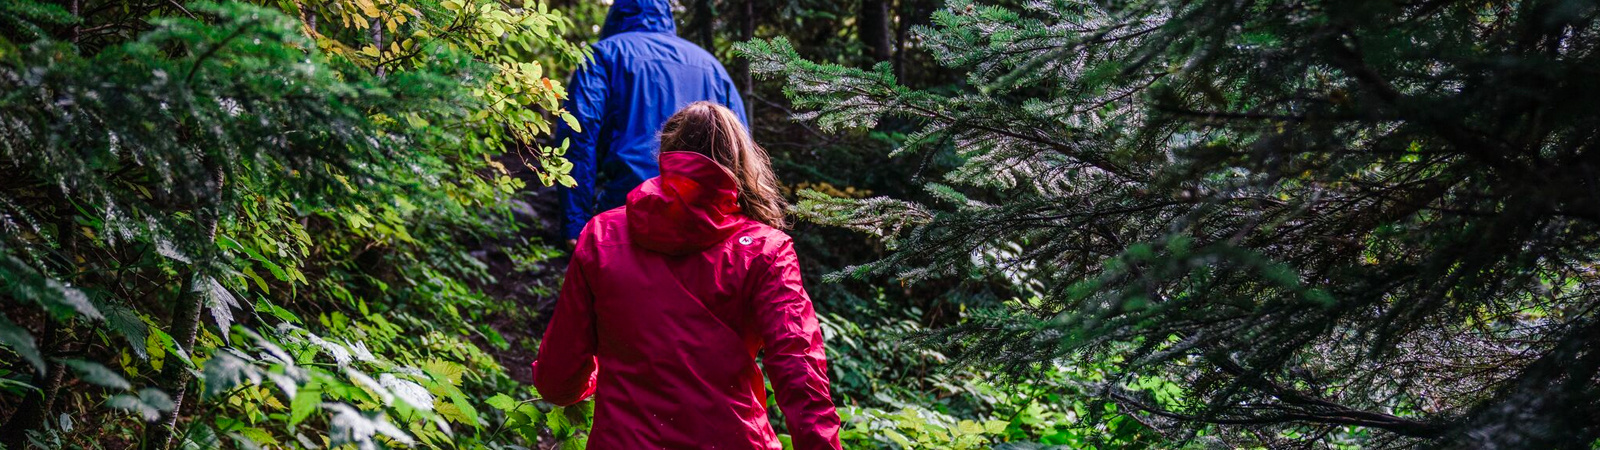 100% recycled and PFC-free rainwear that's waterproof and breathable–and now more durable than ever